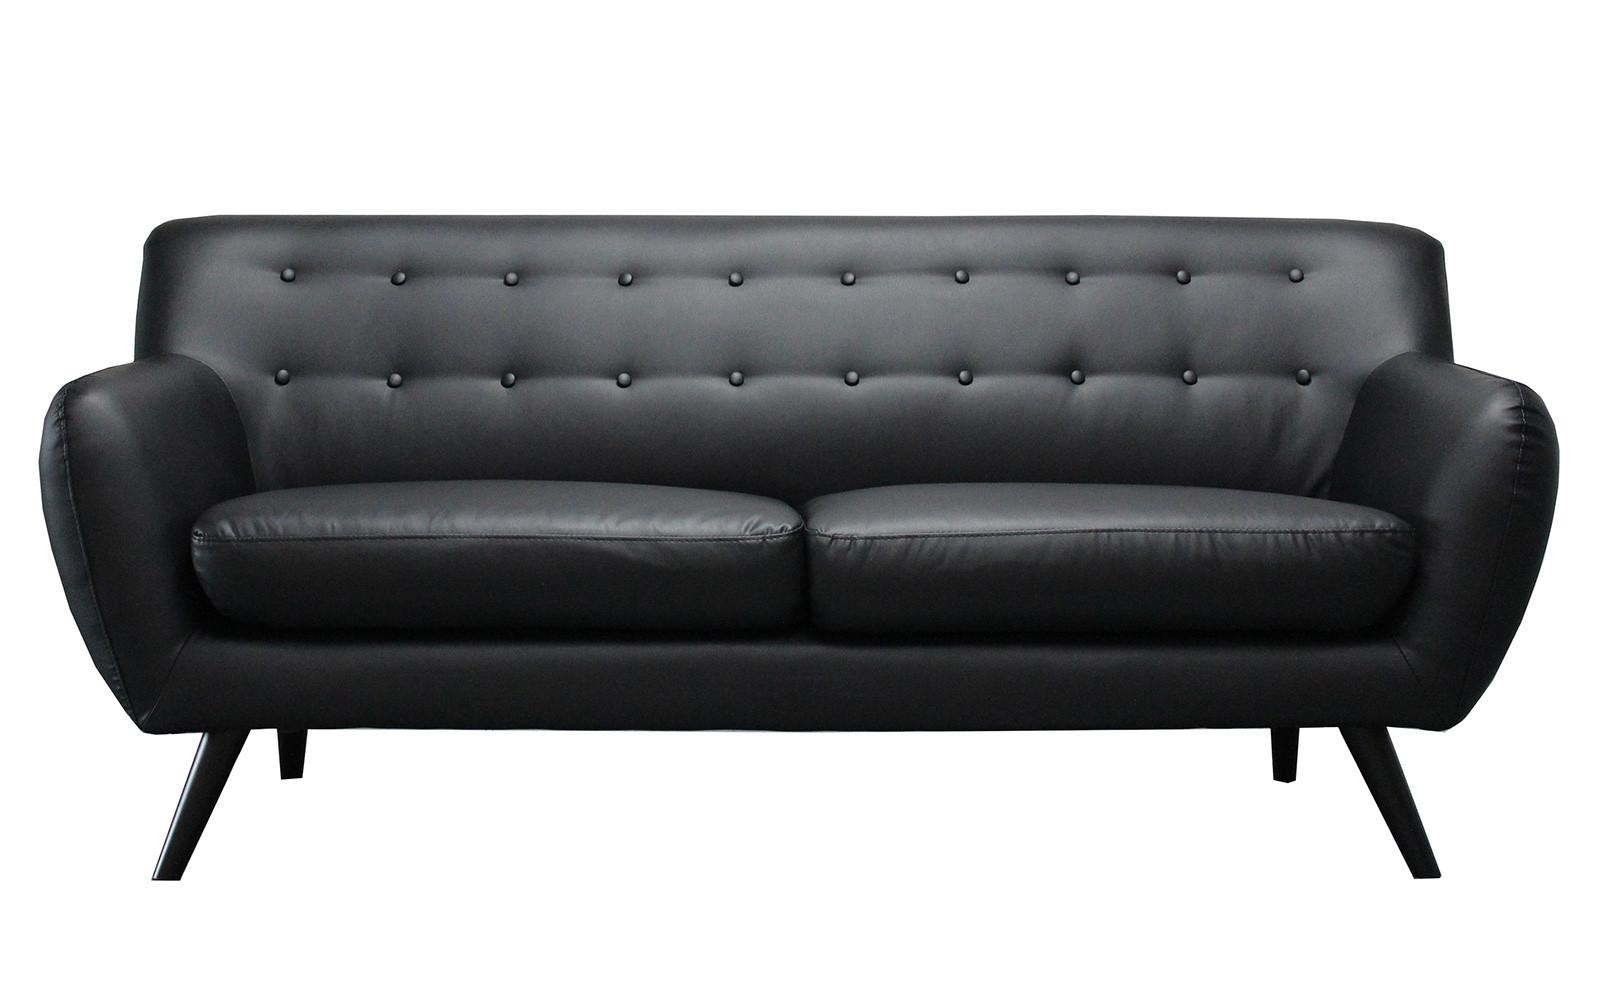 Mid Century Modern Tufted Bonded Leather Sofa – Walmart With Brown Leather Tufted Sofas (View 9 of 20)